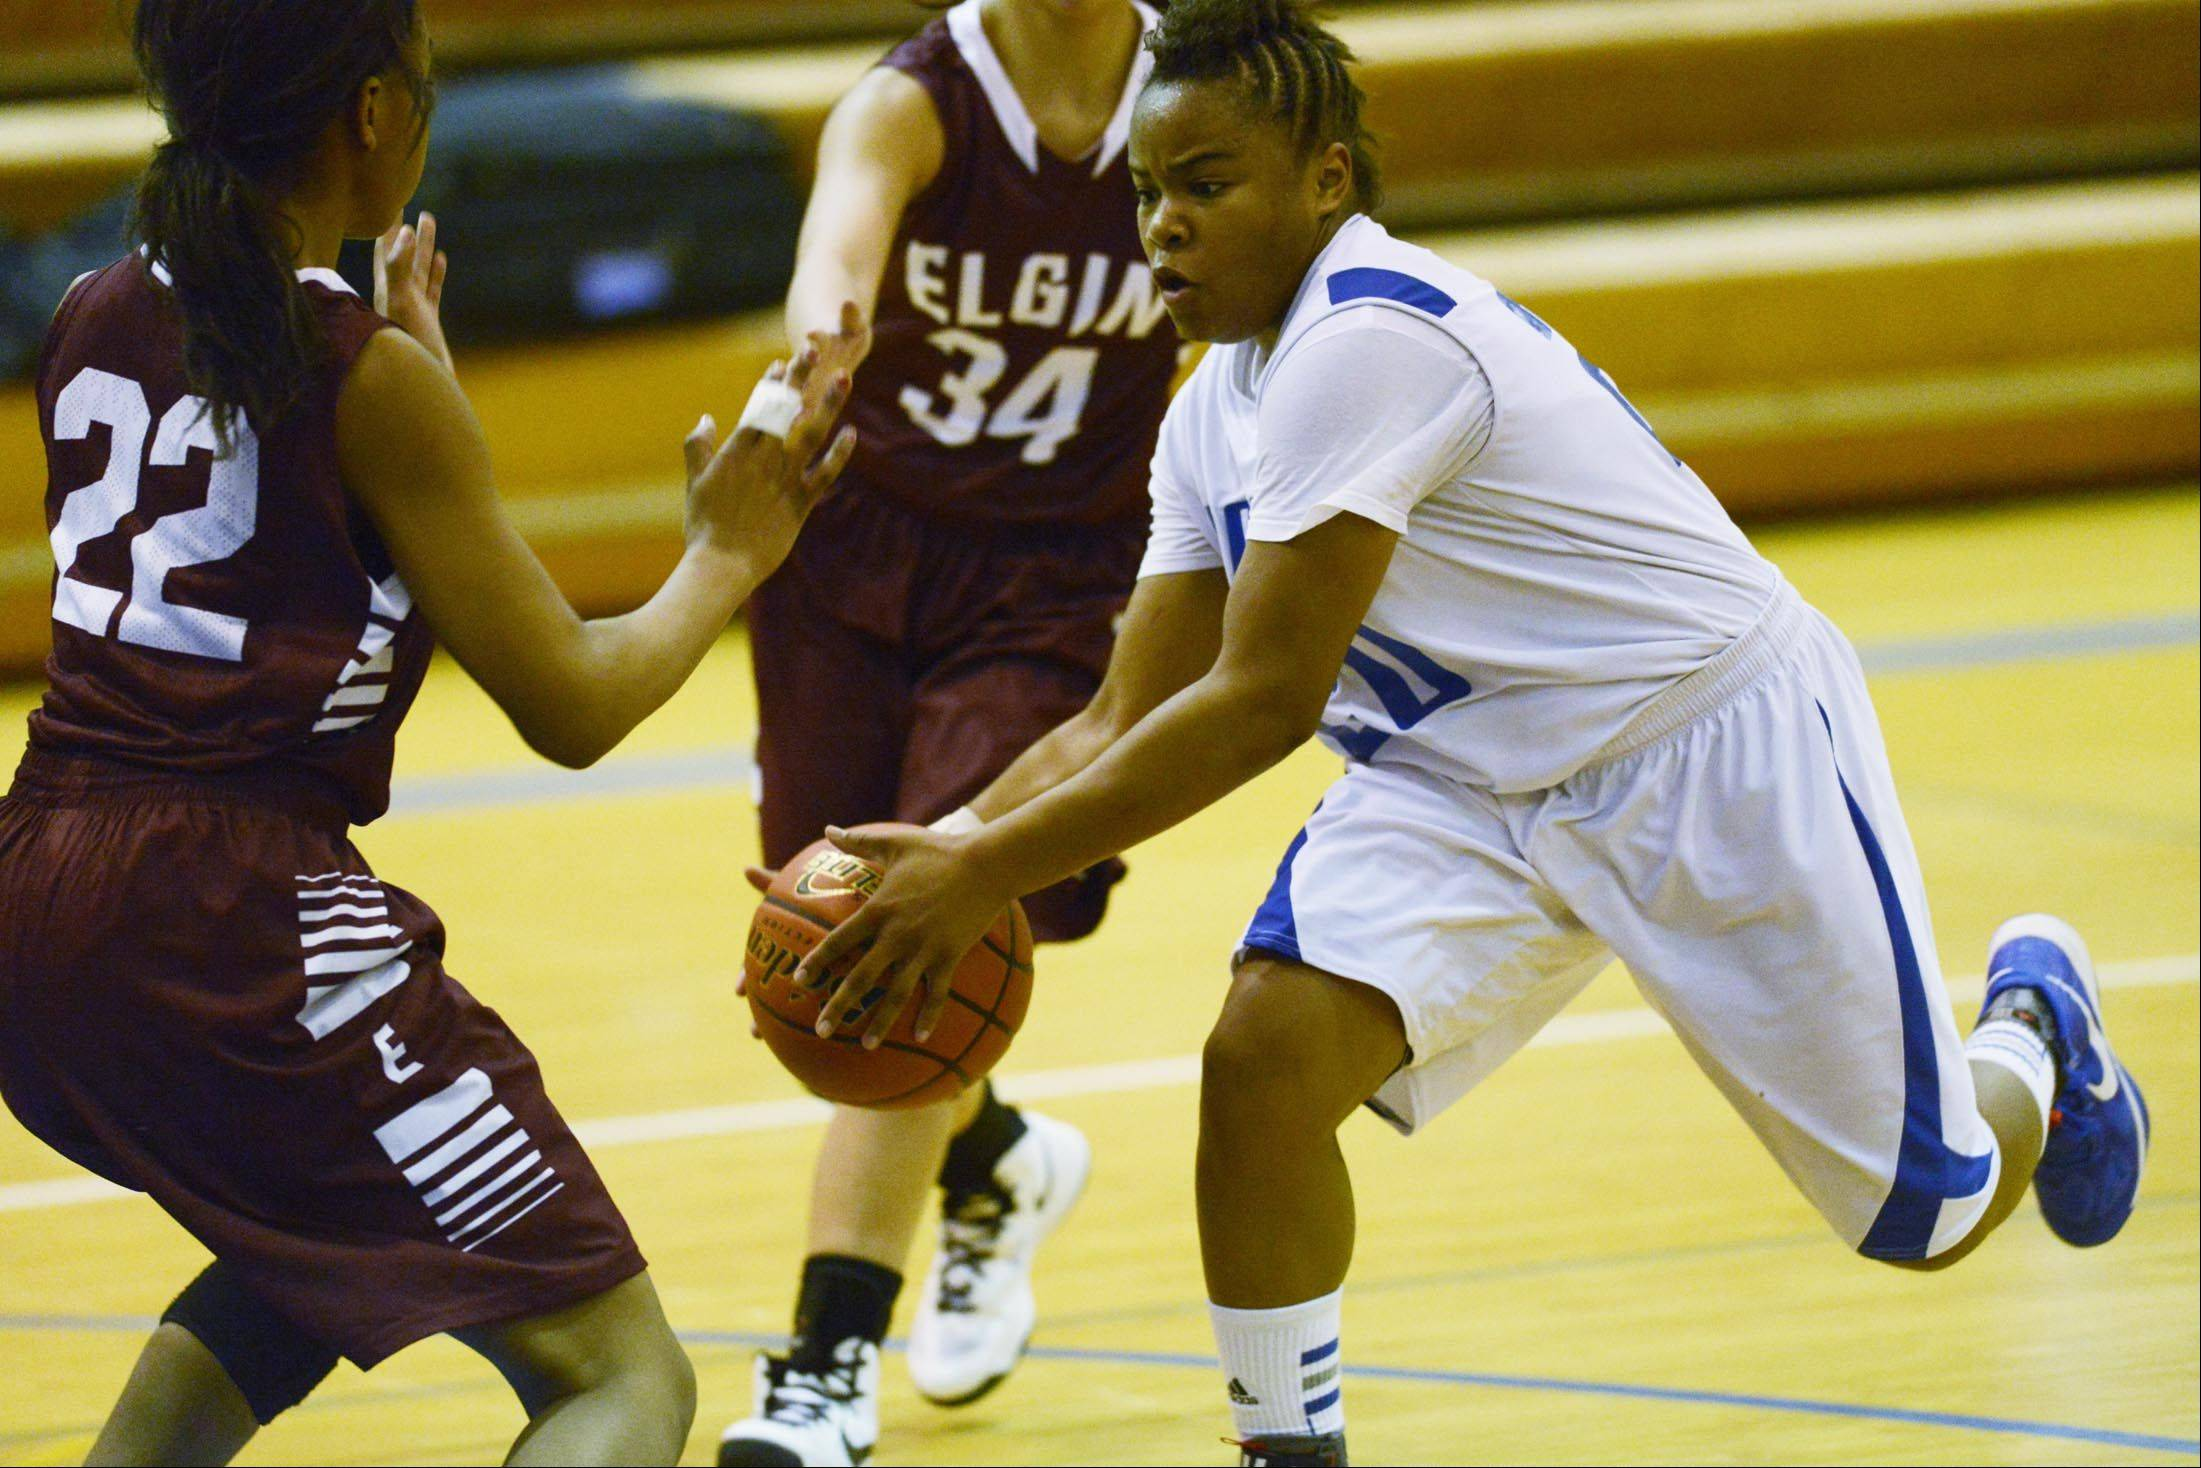 Images: Elgin vs. Larkin, girls basketball